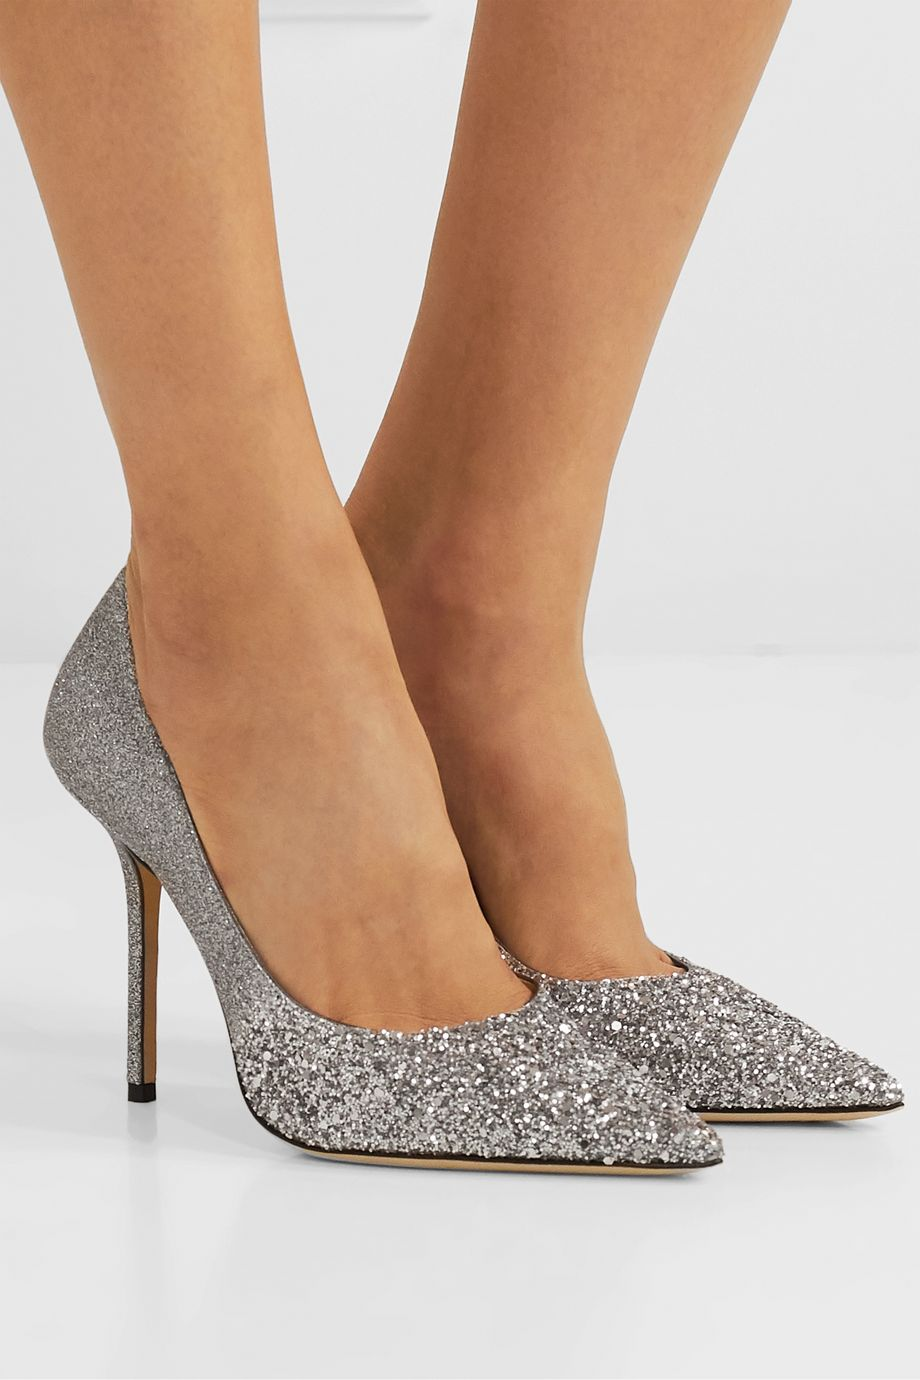 Jimmy Choo Love 100 glittered canvas pumps